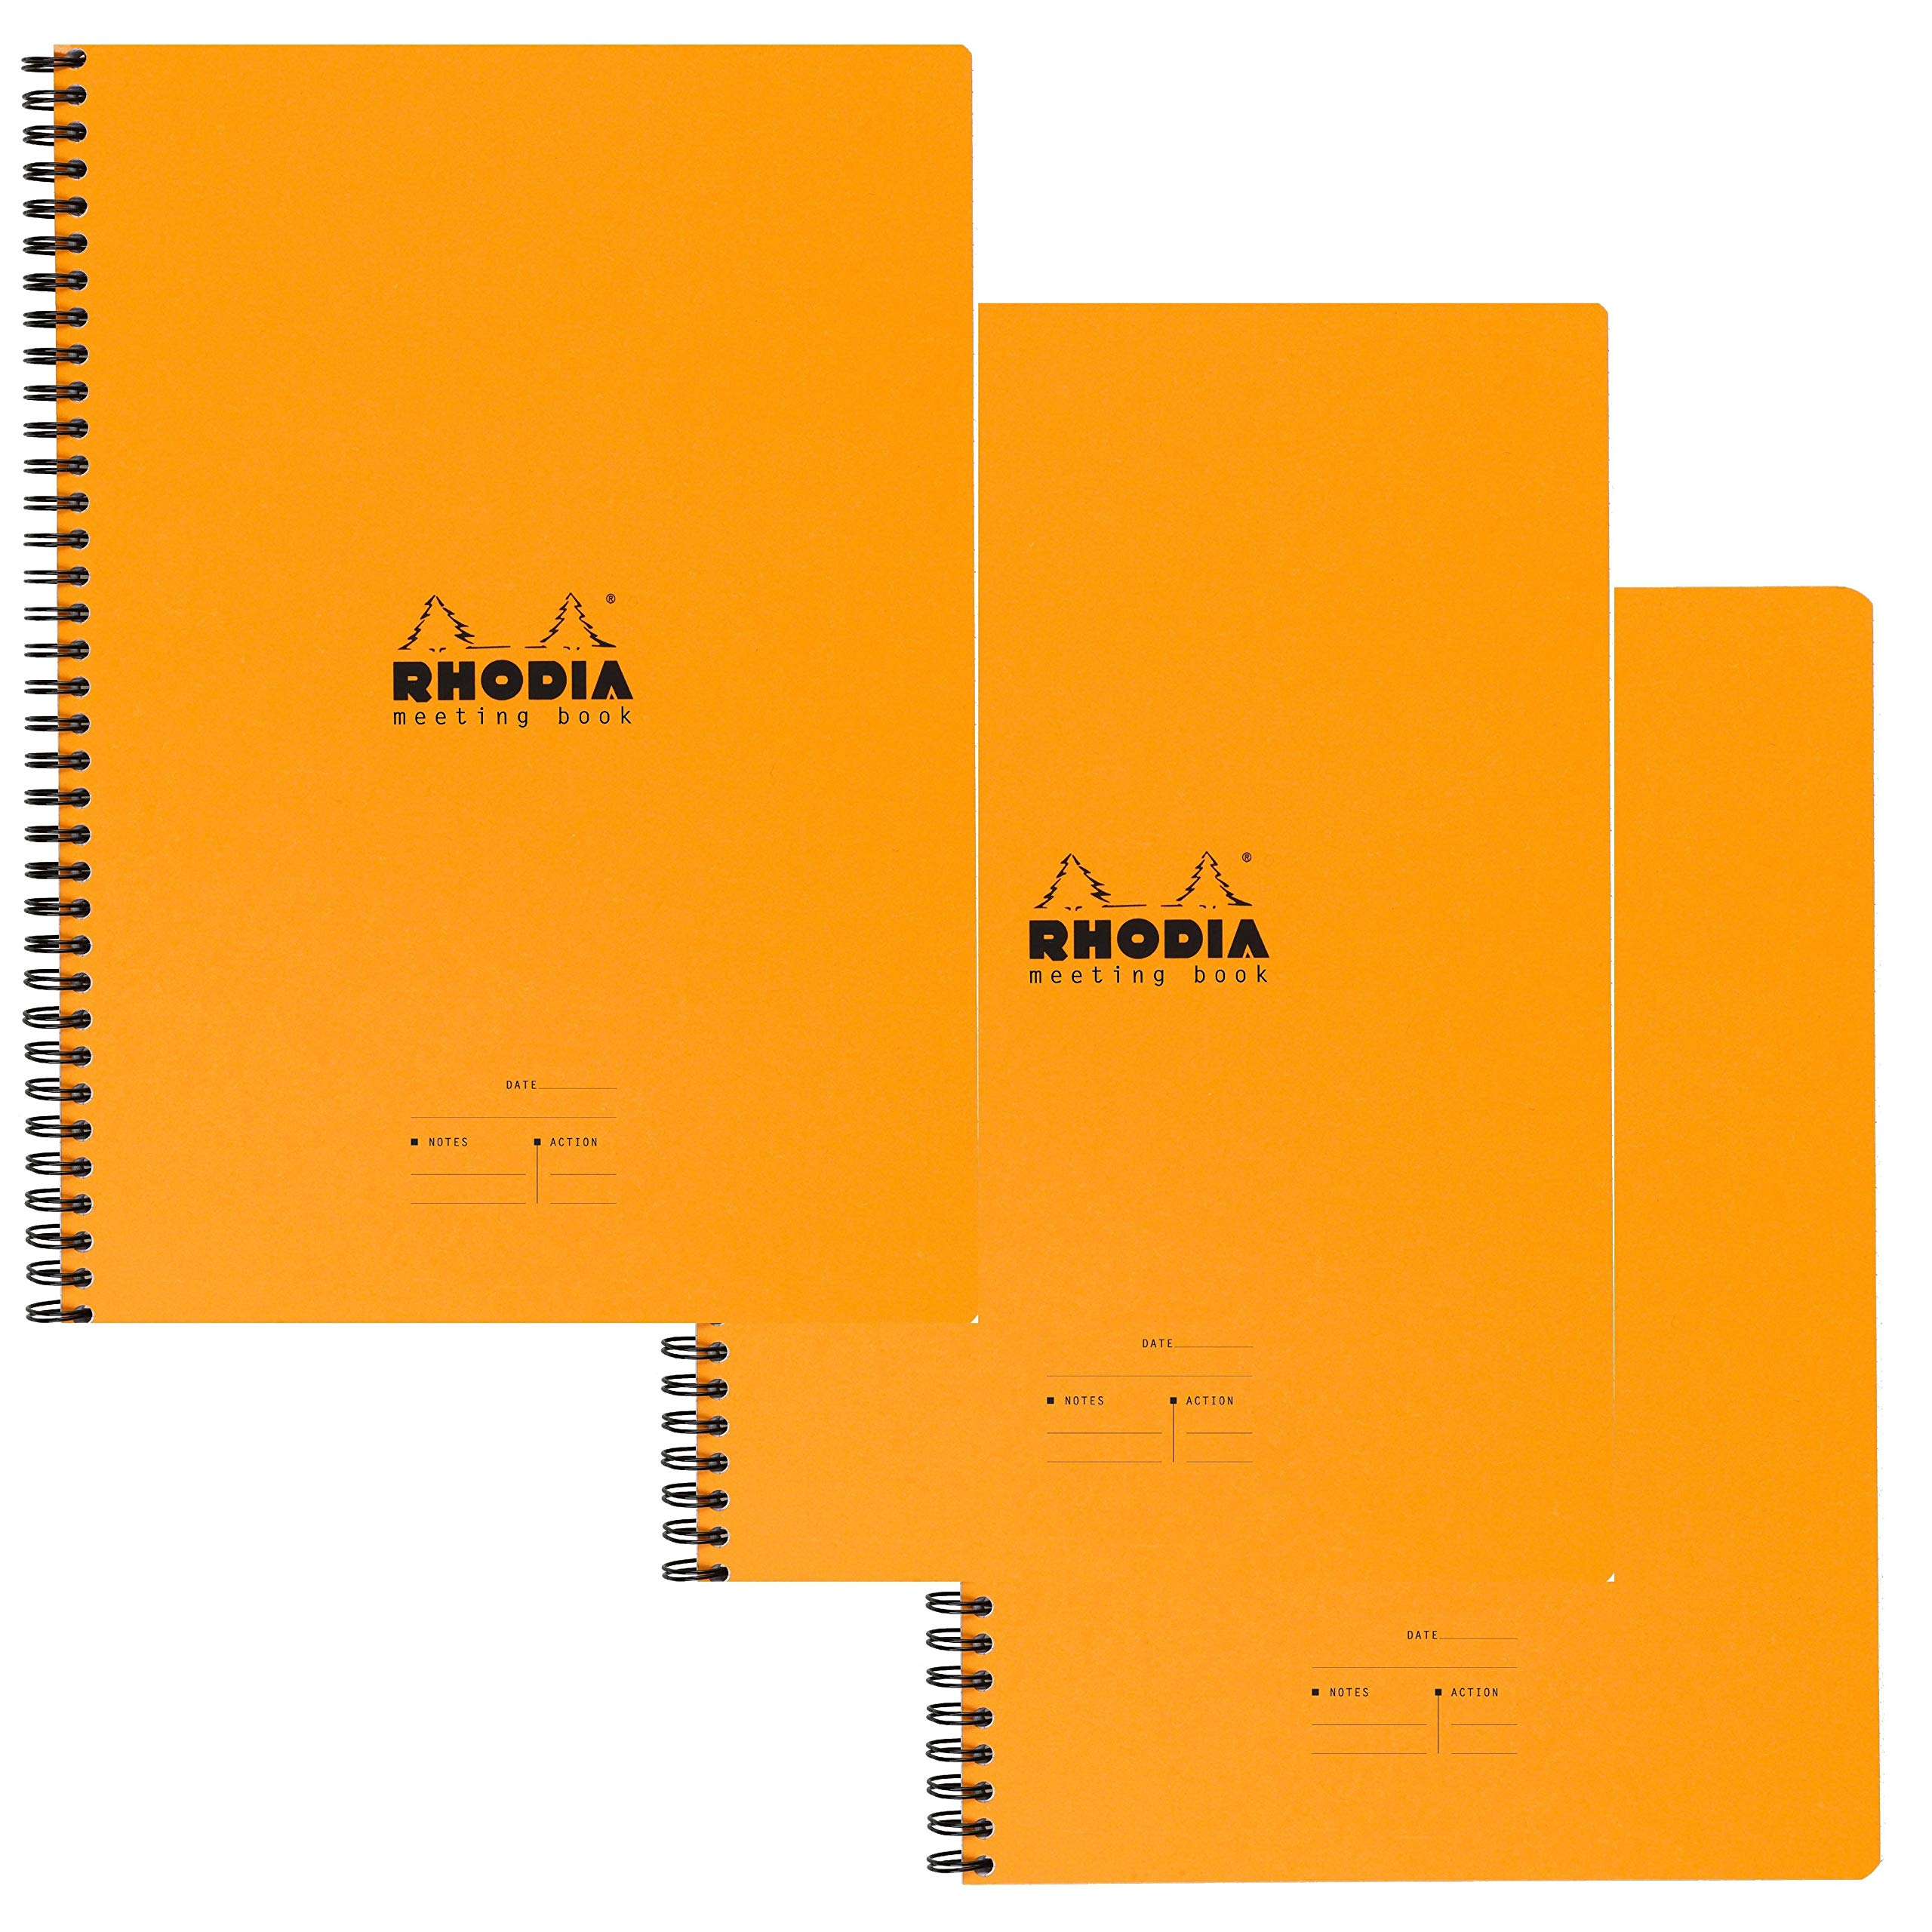 Rhodia Meeting Books 8.85 X 11.69 inches, Orange, Pack of 3